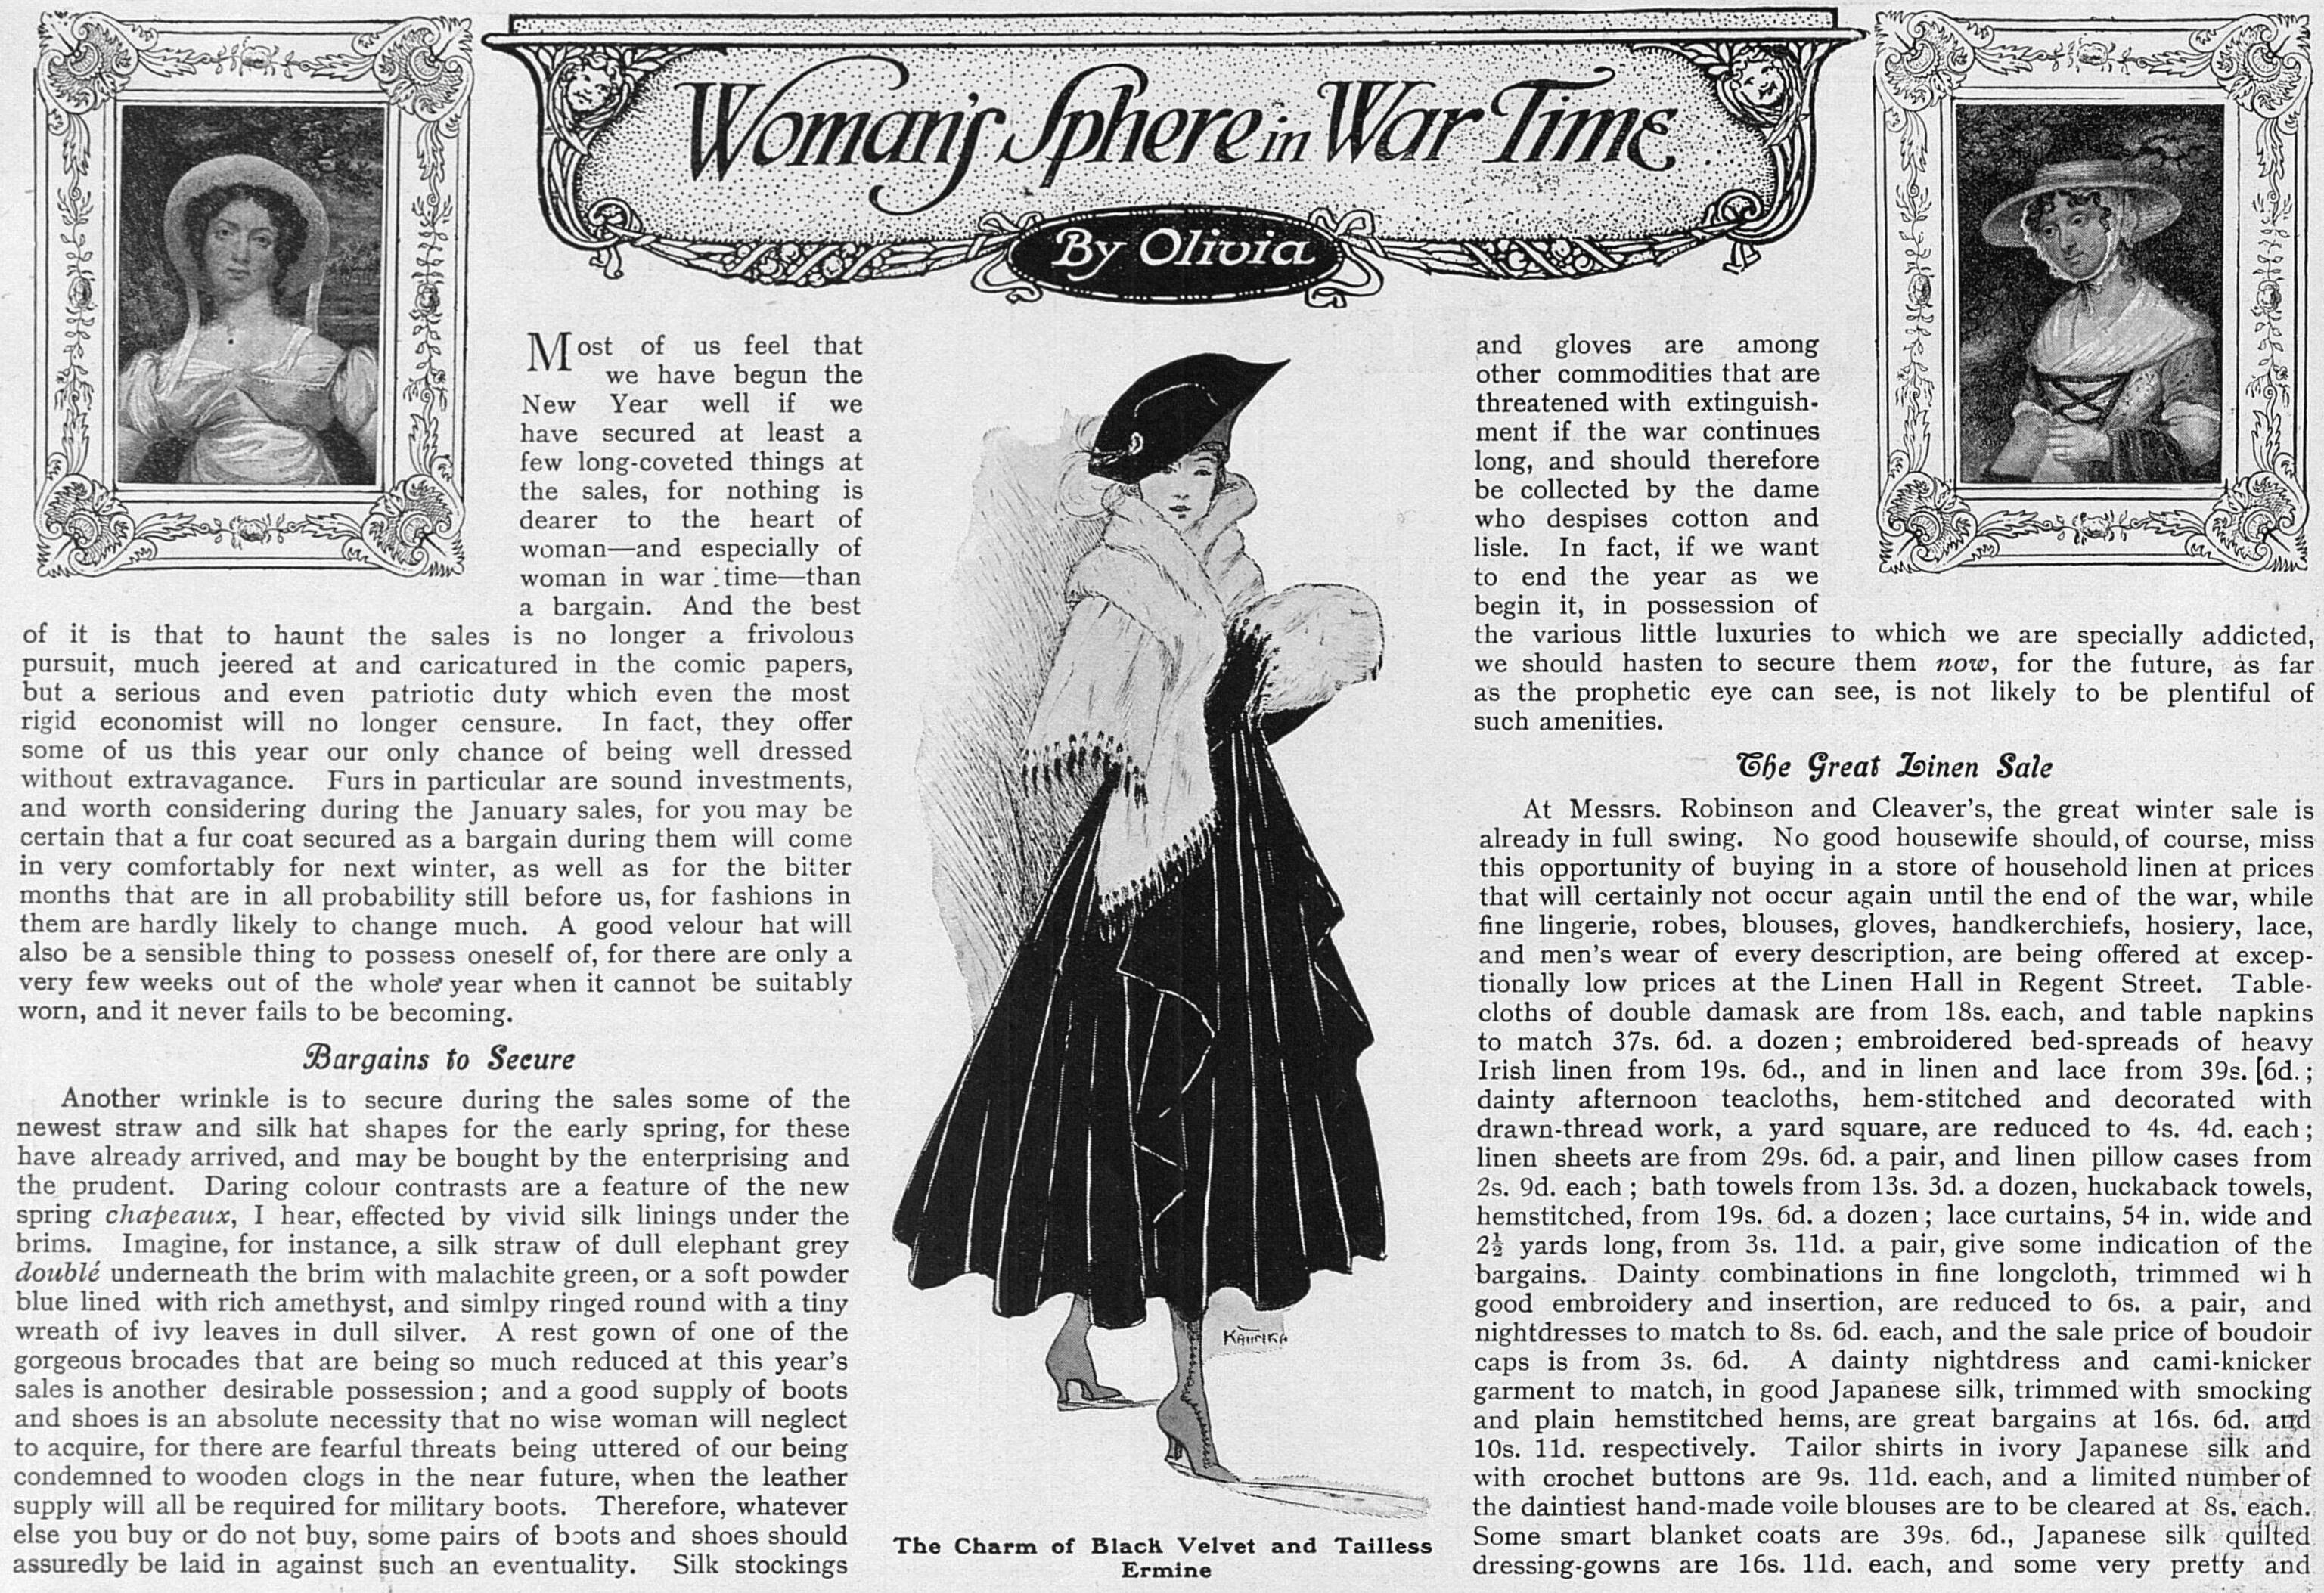 WomansSphereInWarTime_6Jan1917